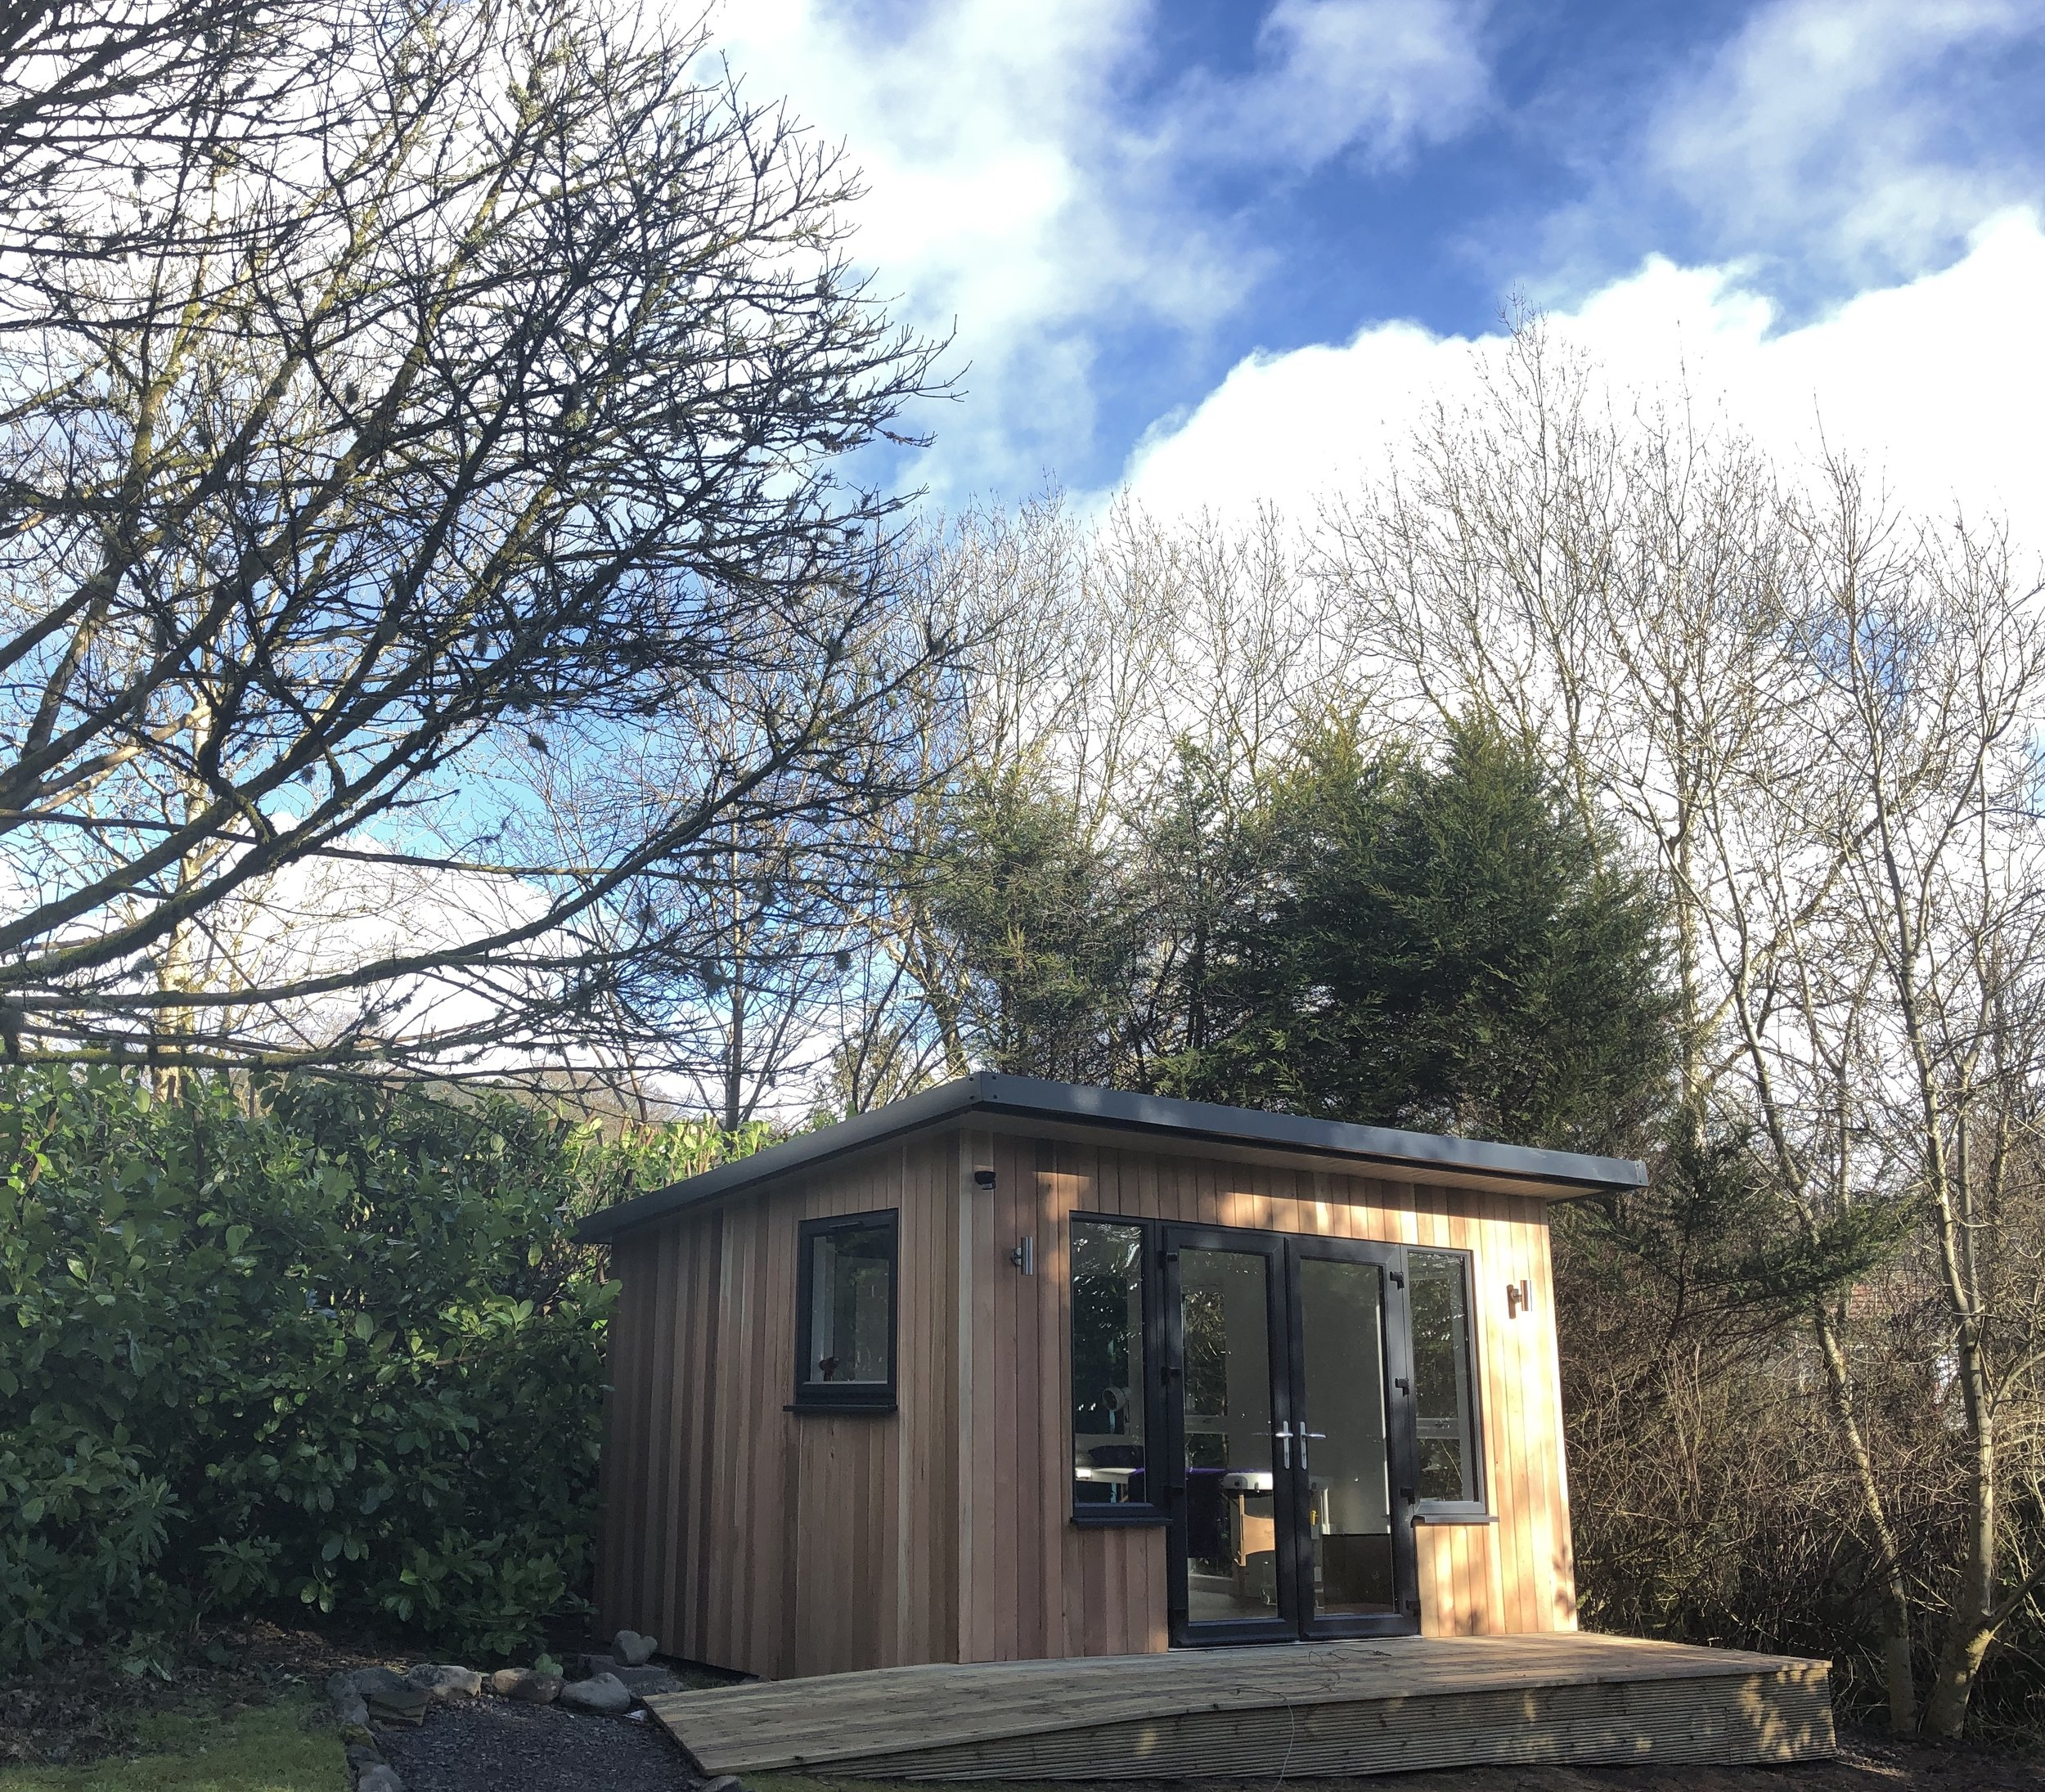 Acupuncture garden room clinic in Moffat